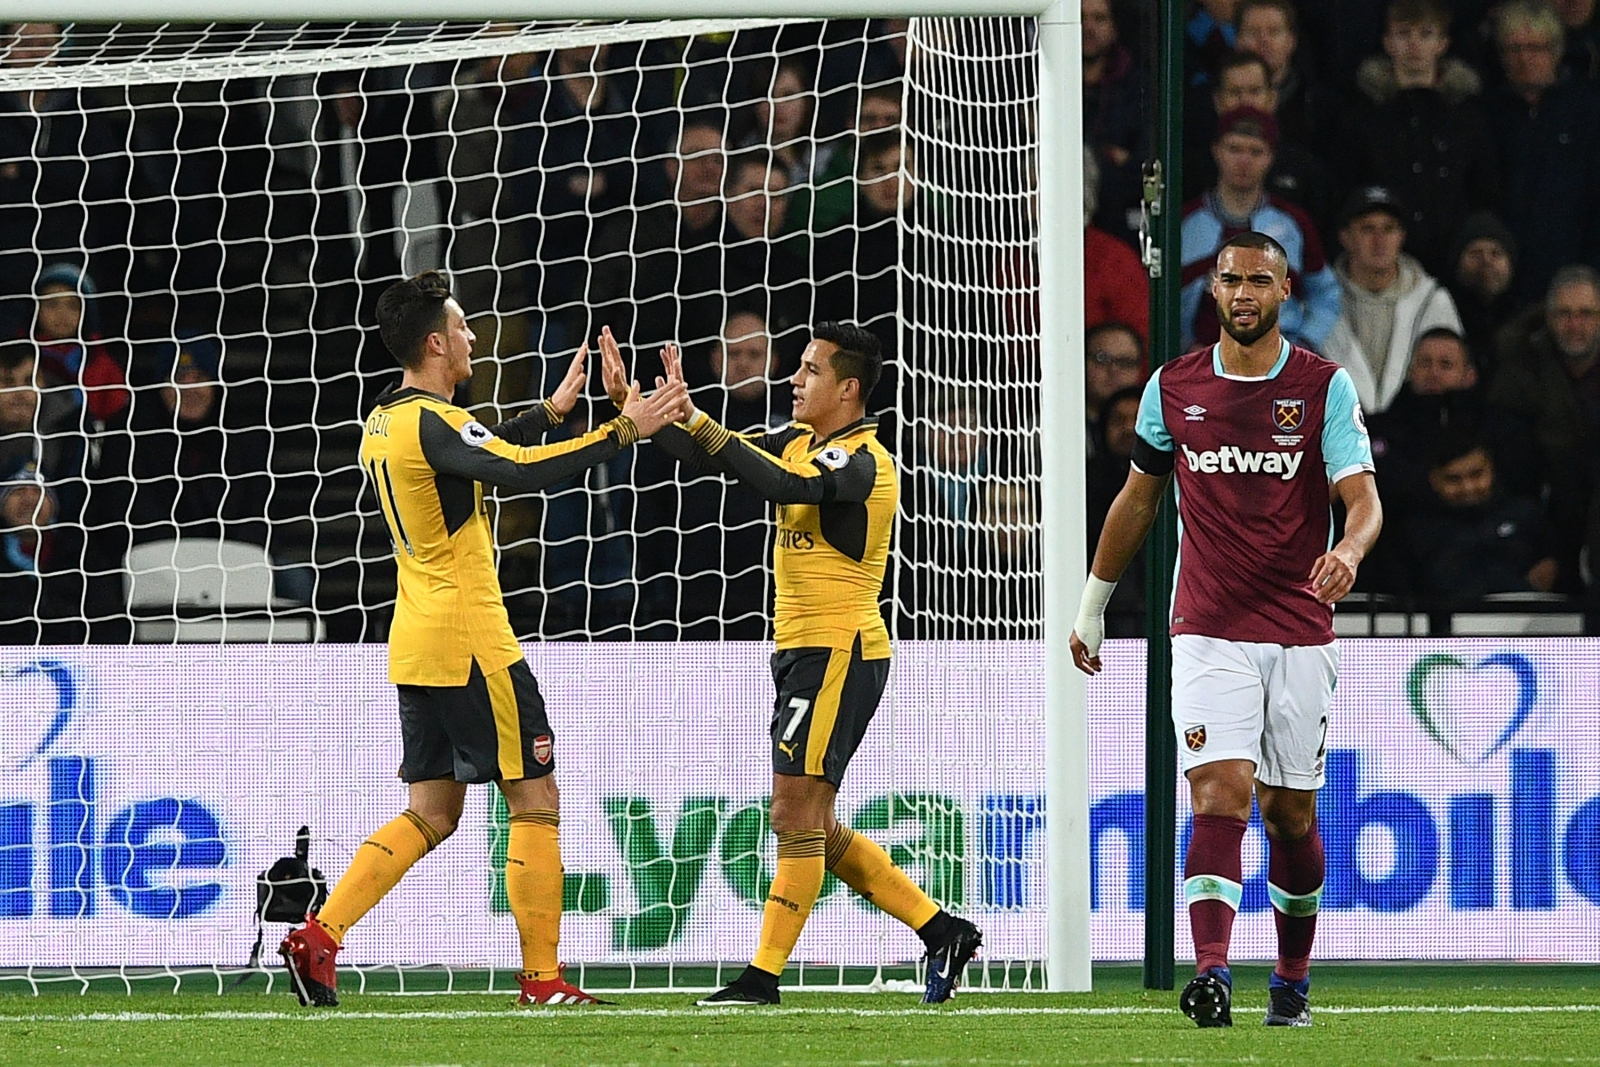 Goal Arsenal's incredible Tuesday streak ended at Everton